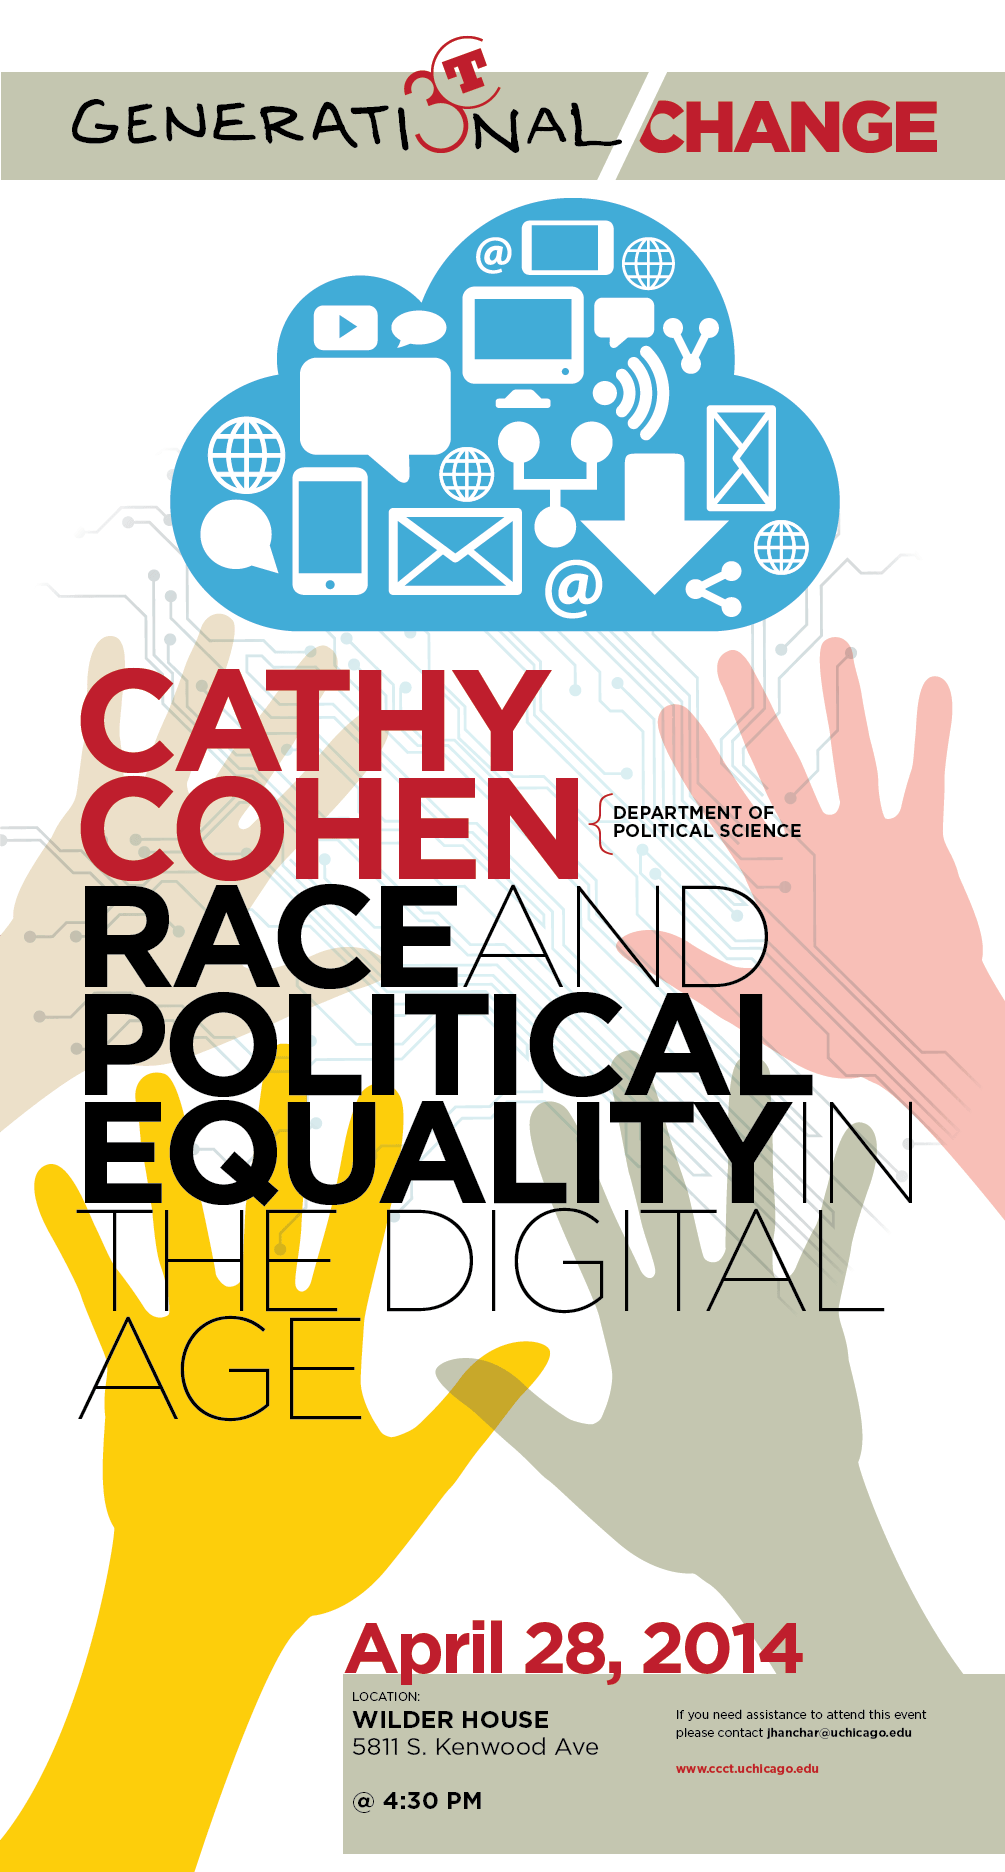 Cathy Cohen Race and Political Equality in the Digital Age event poster